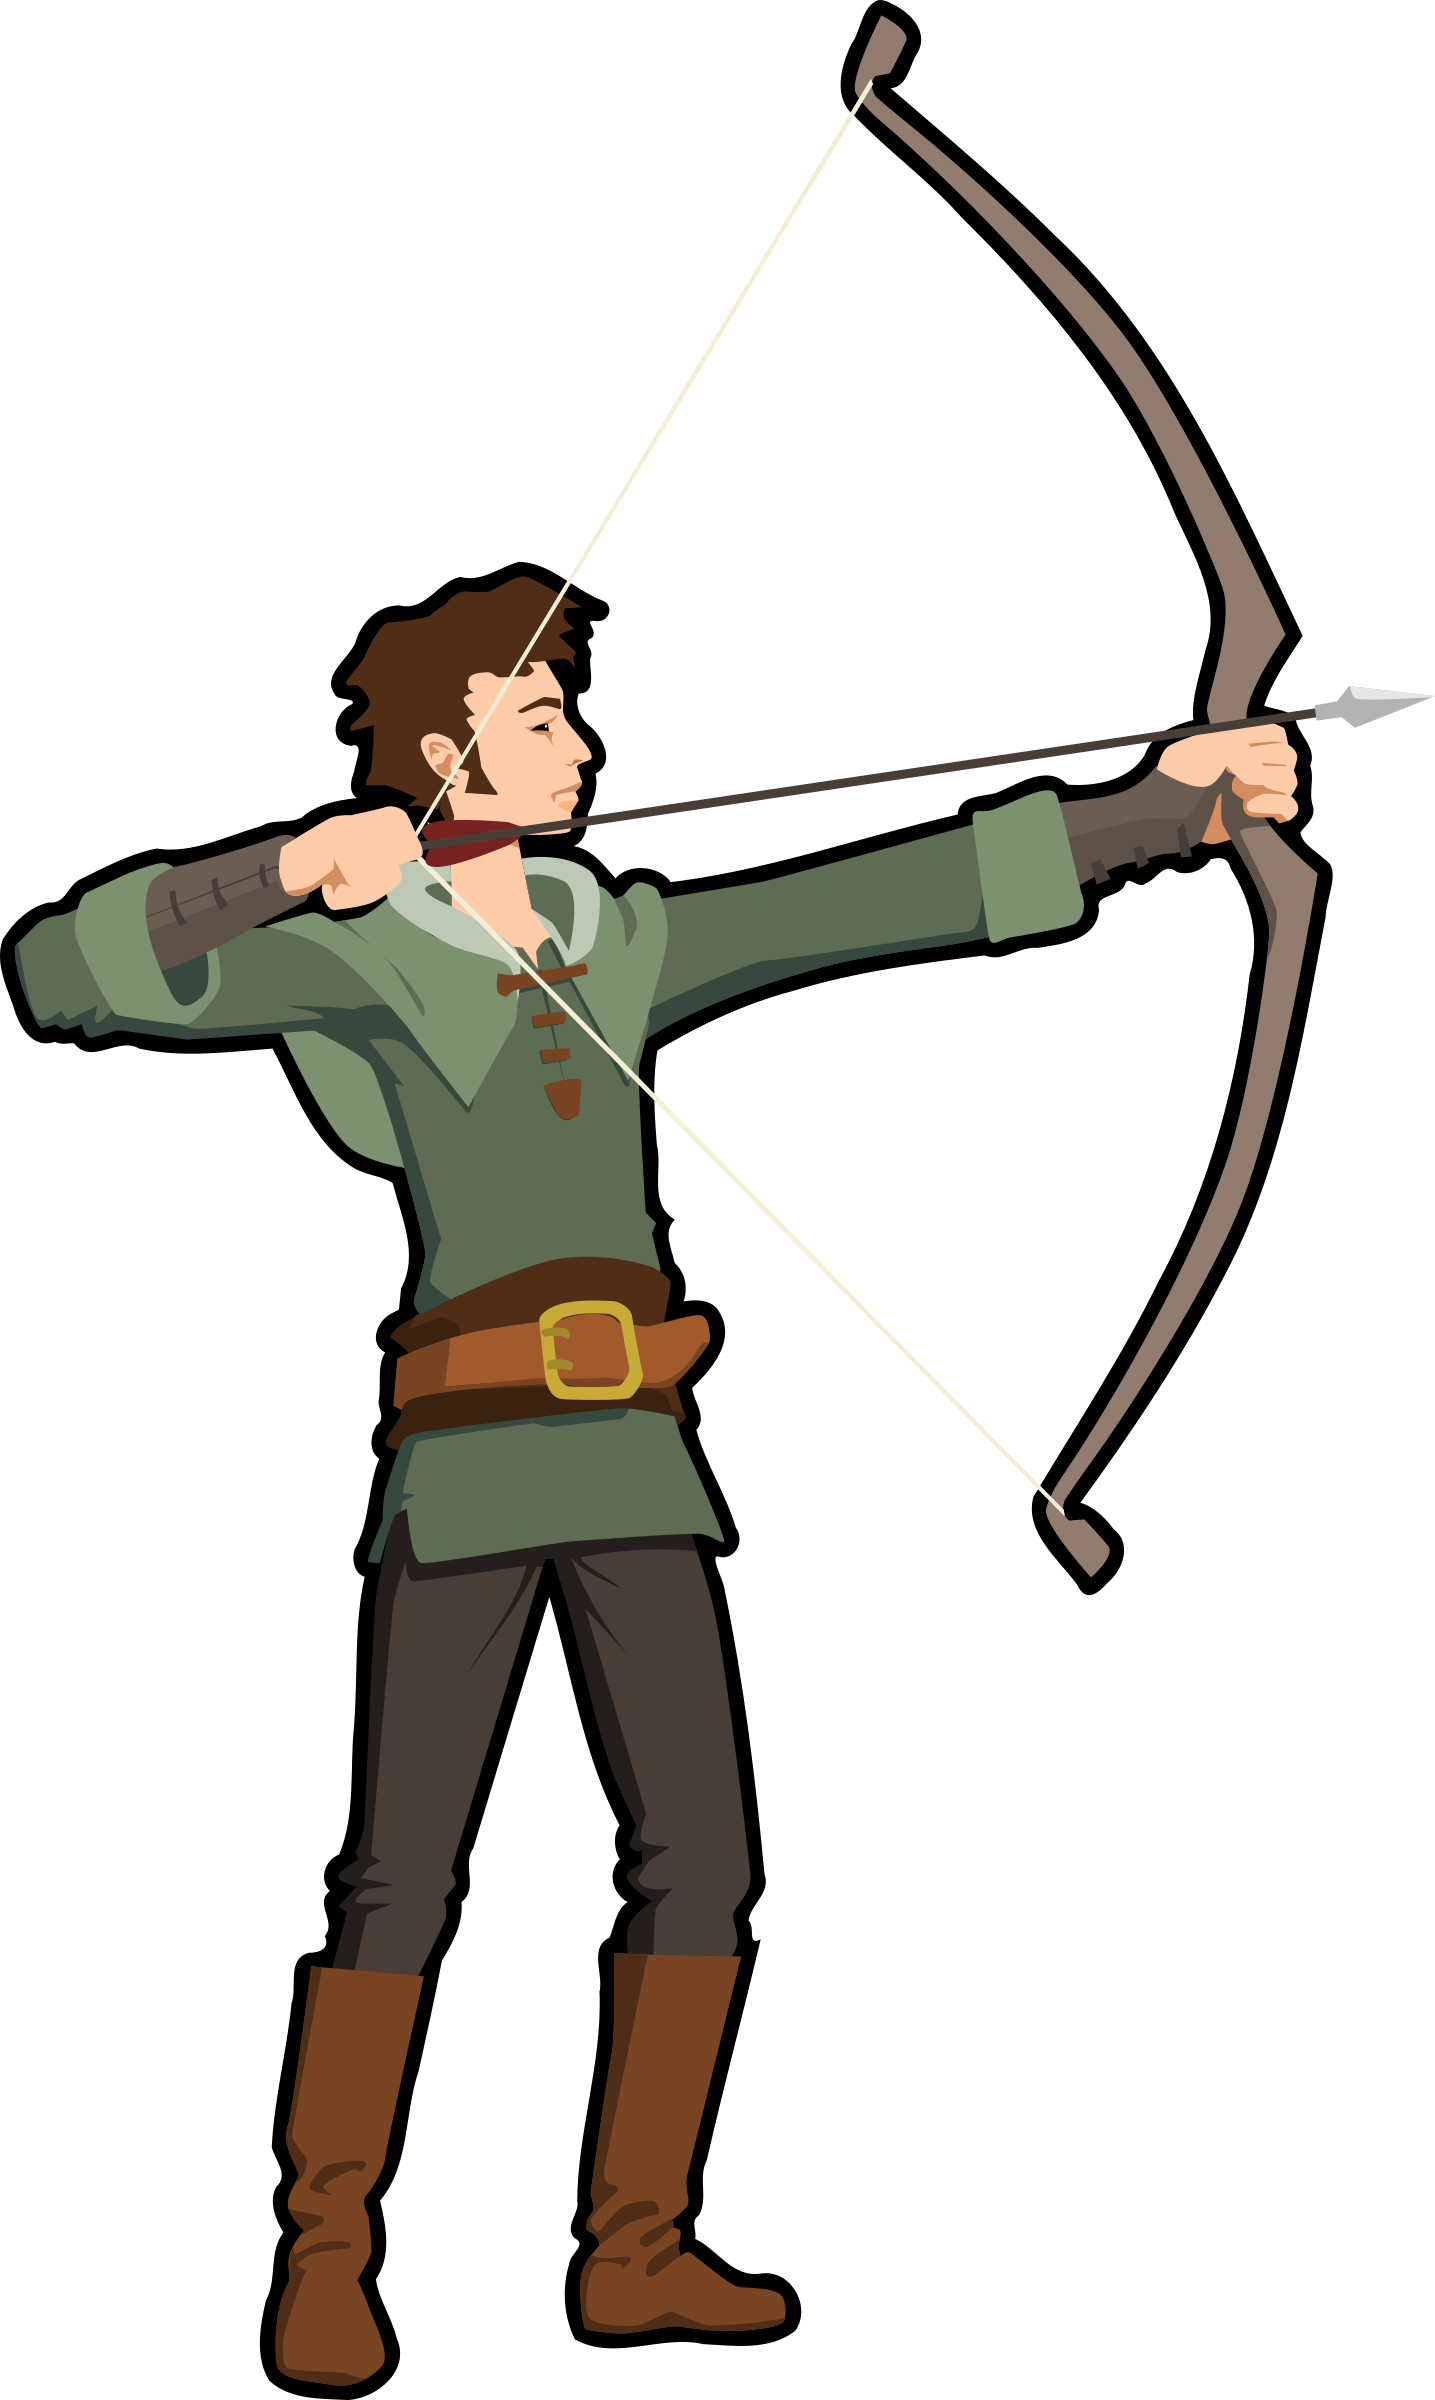 Archer big image png. Hungry clipart hungry person